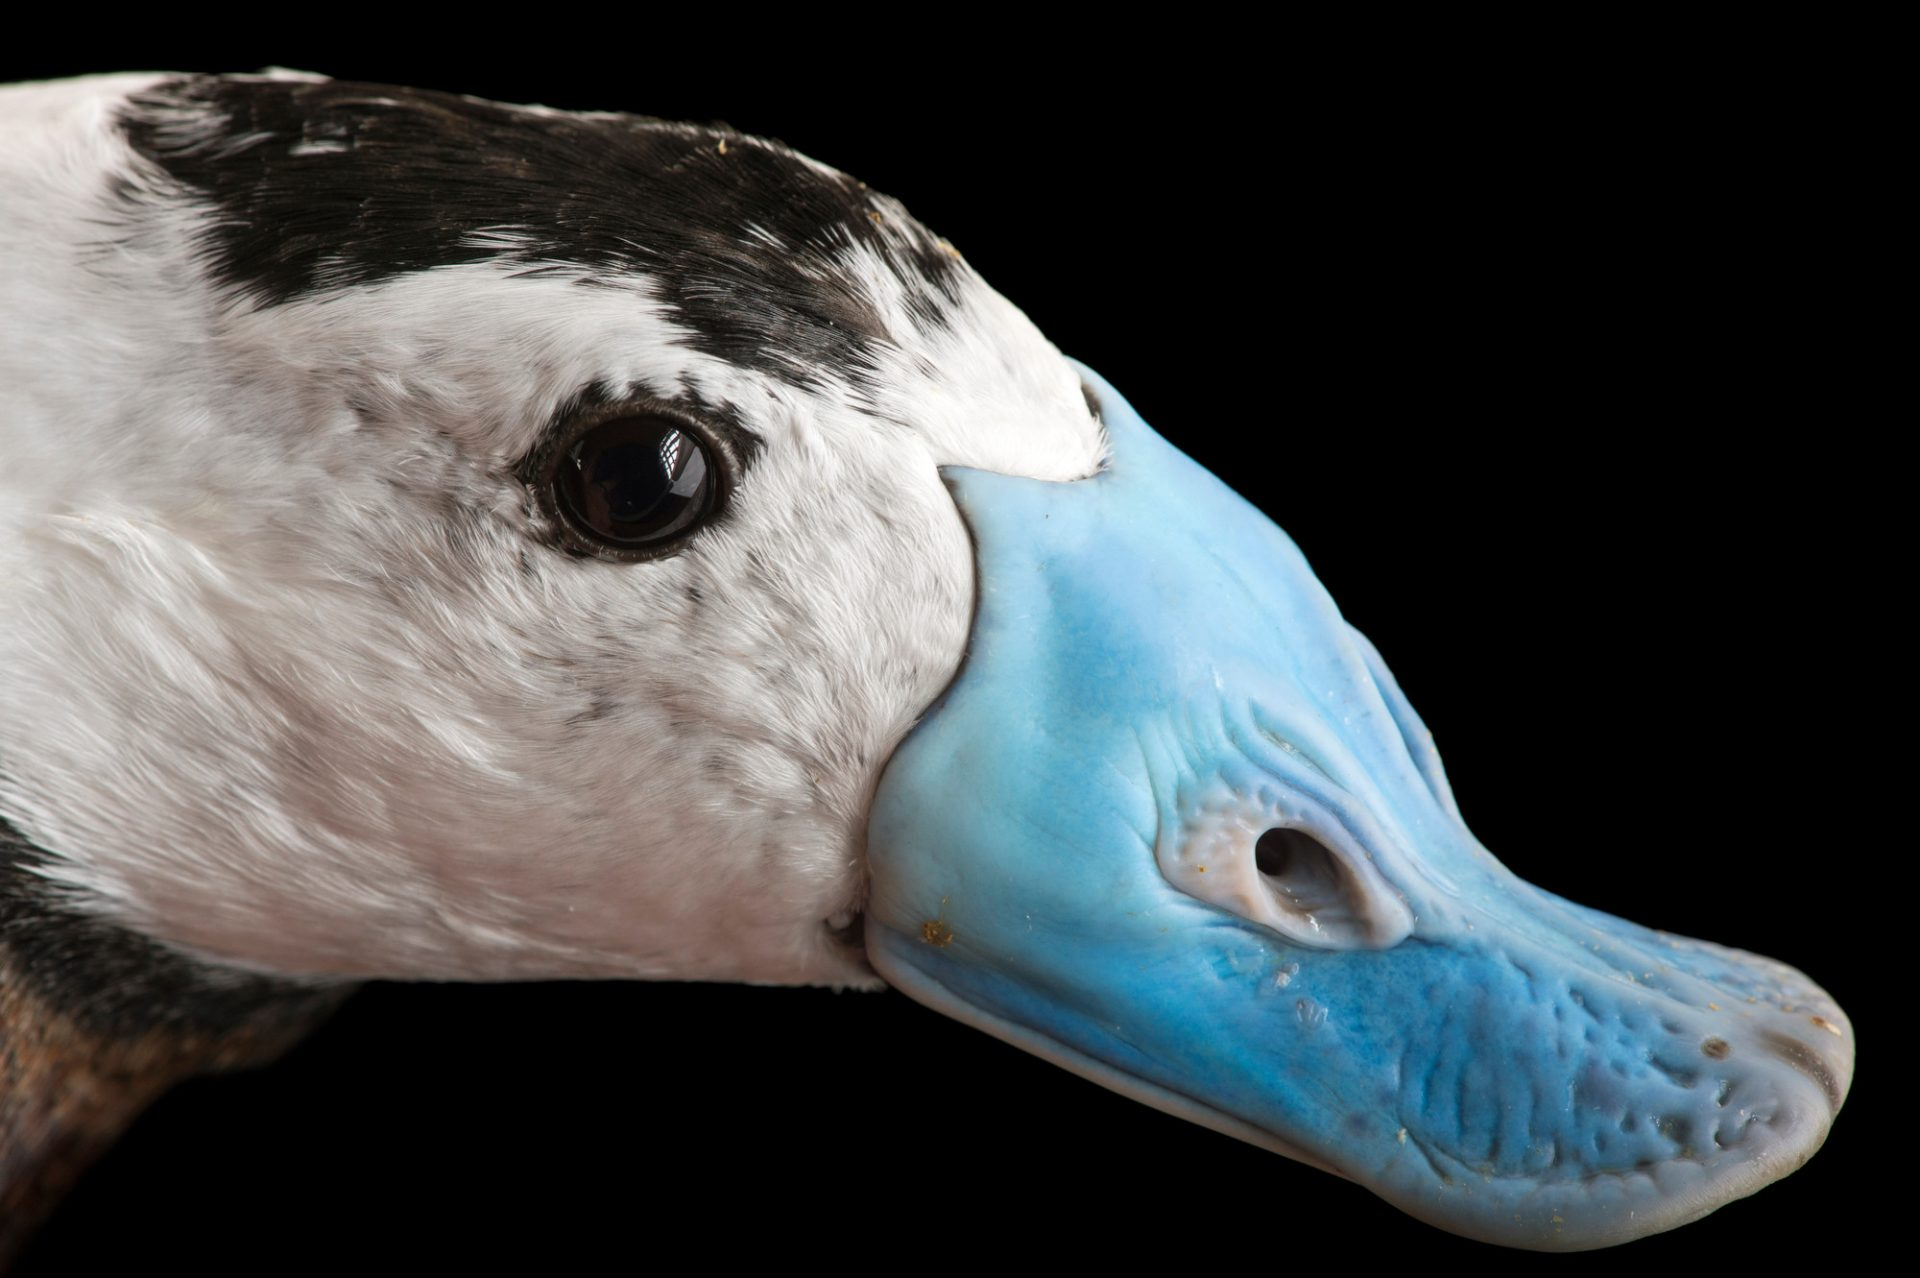 Picture of an endangered white-headed duck (Oxyura leucocephala) at Sylvan Heights Bird Park.